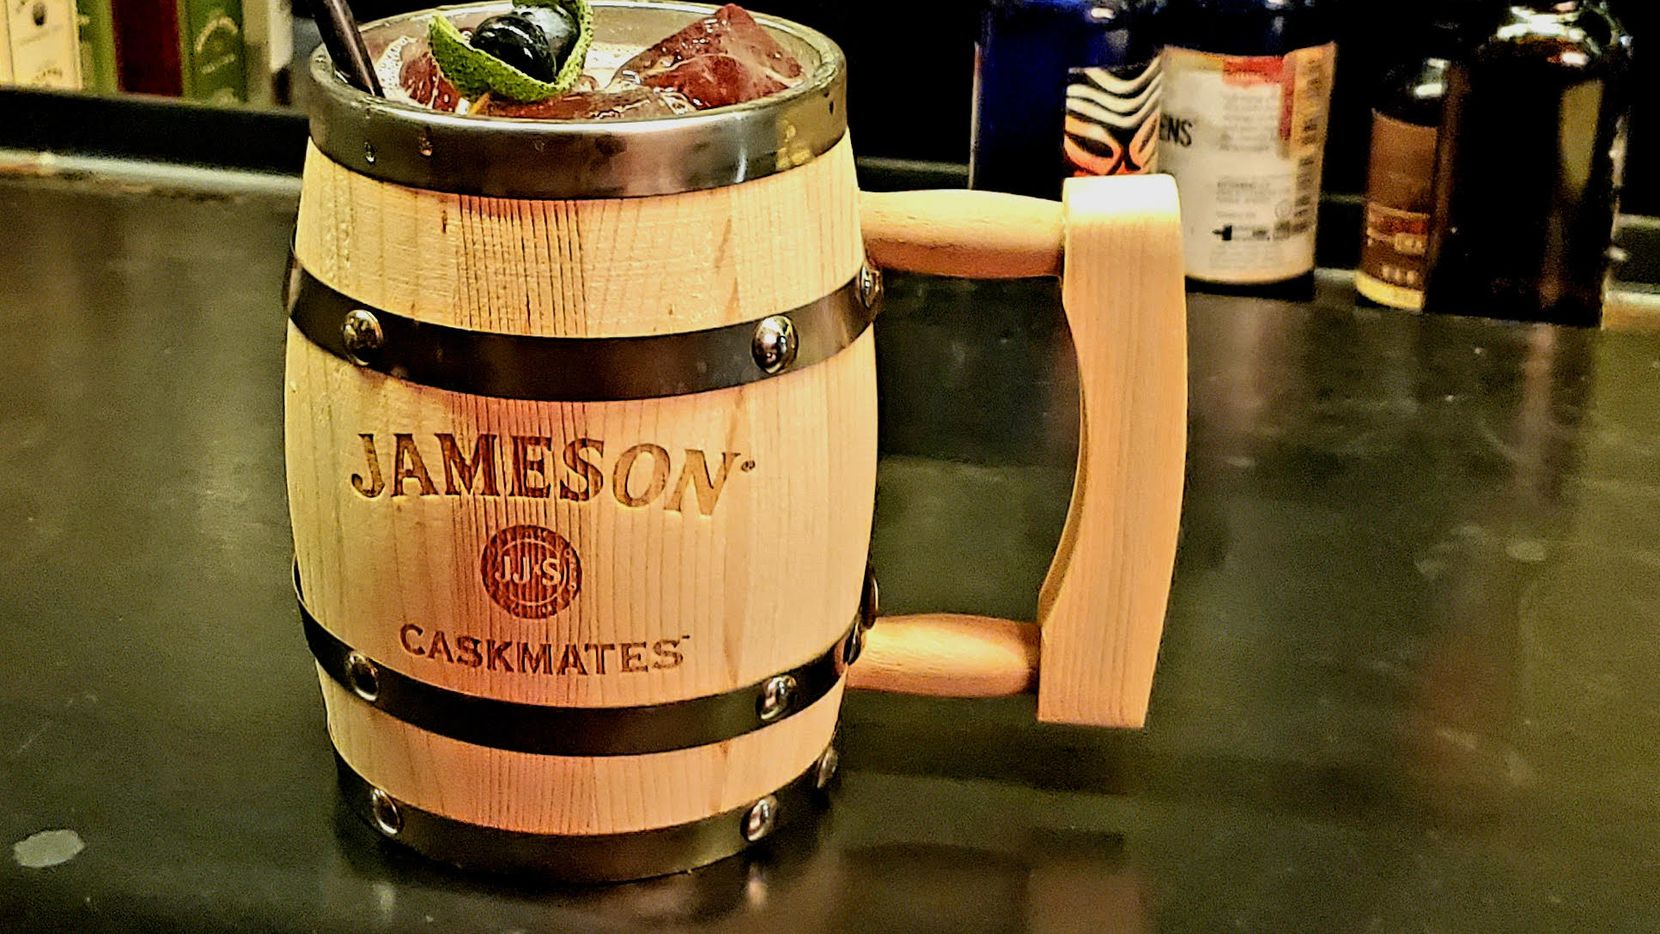 The Blueberry Mule at Trick Pony features Jameson Caskmates Stout and is served in a keepsake mug.